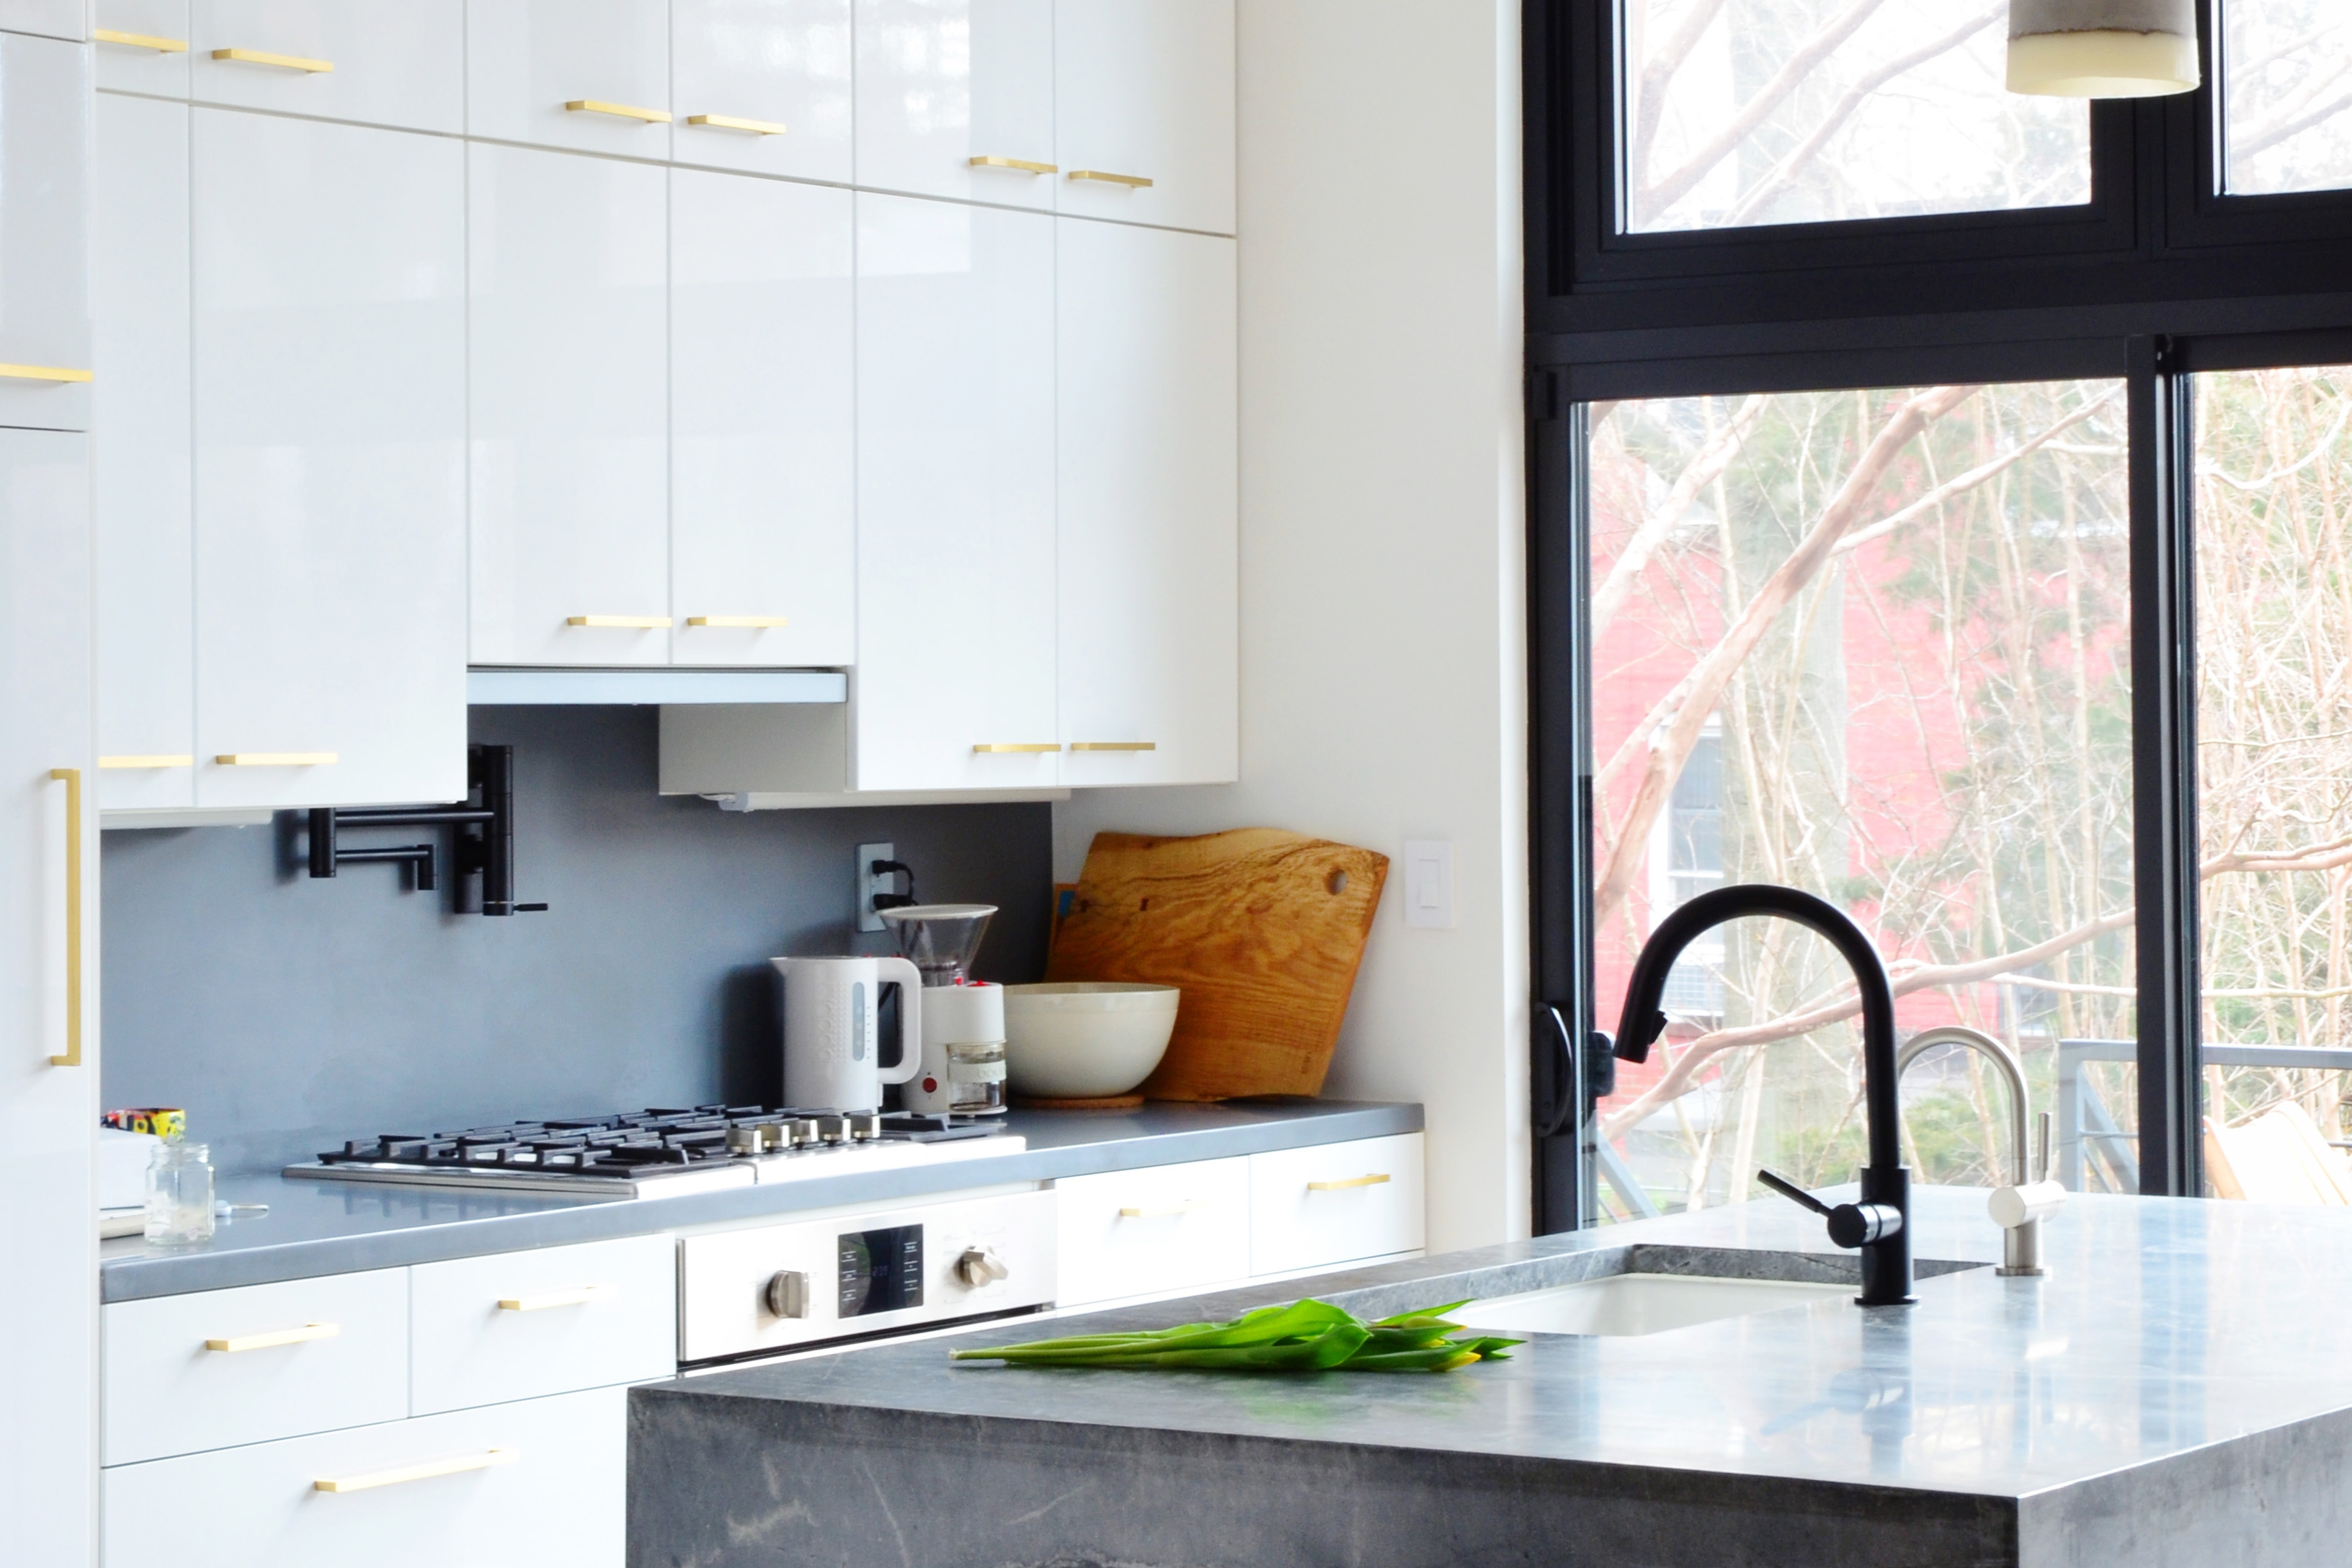 Ikea Hacks For The Kitchen Apartment Therapy